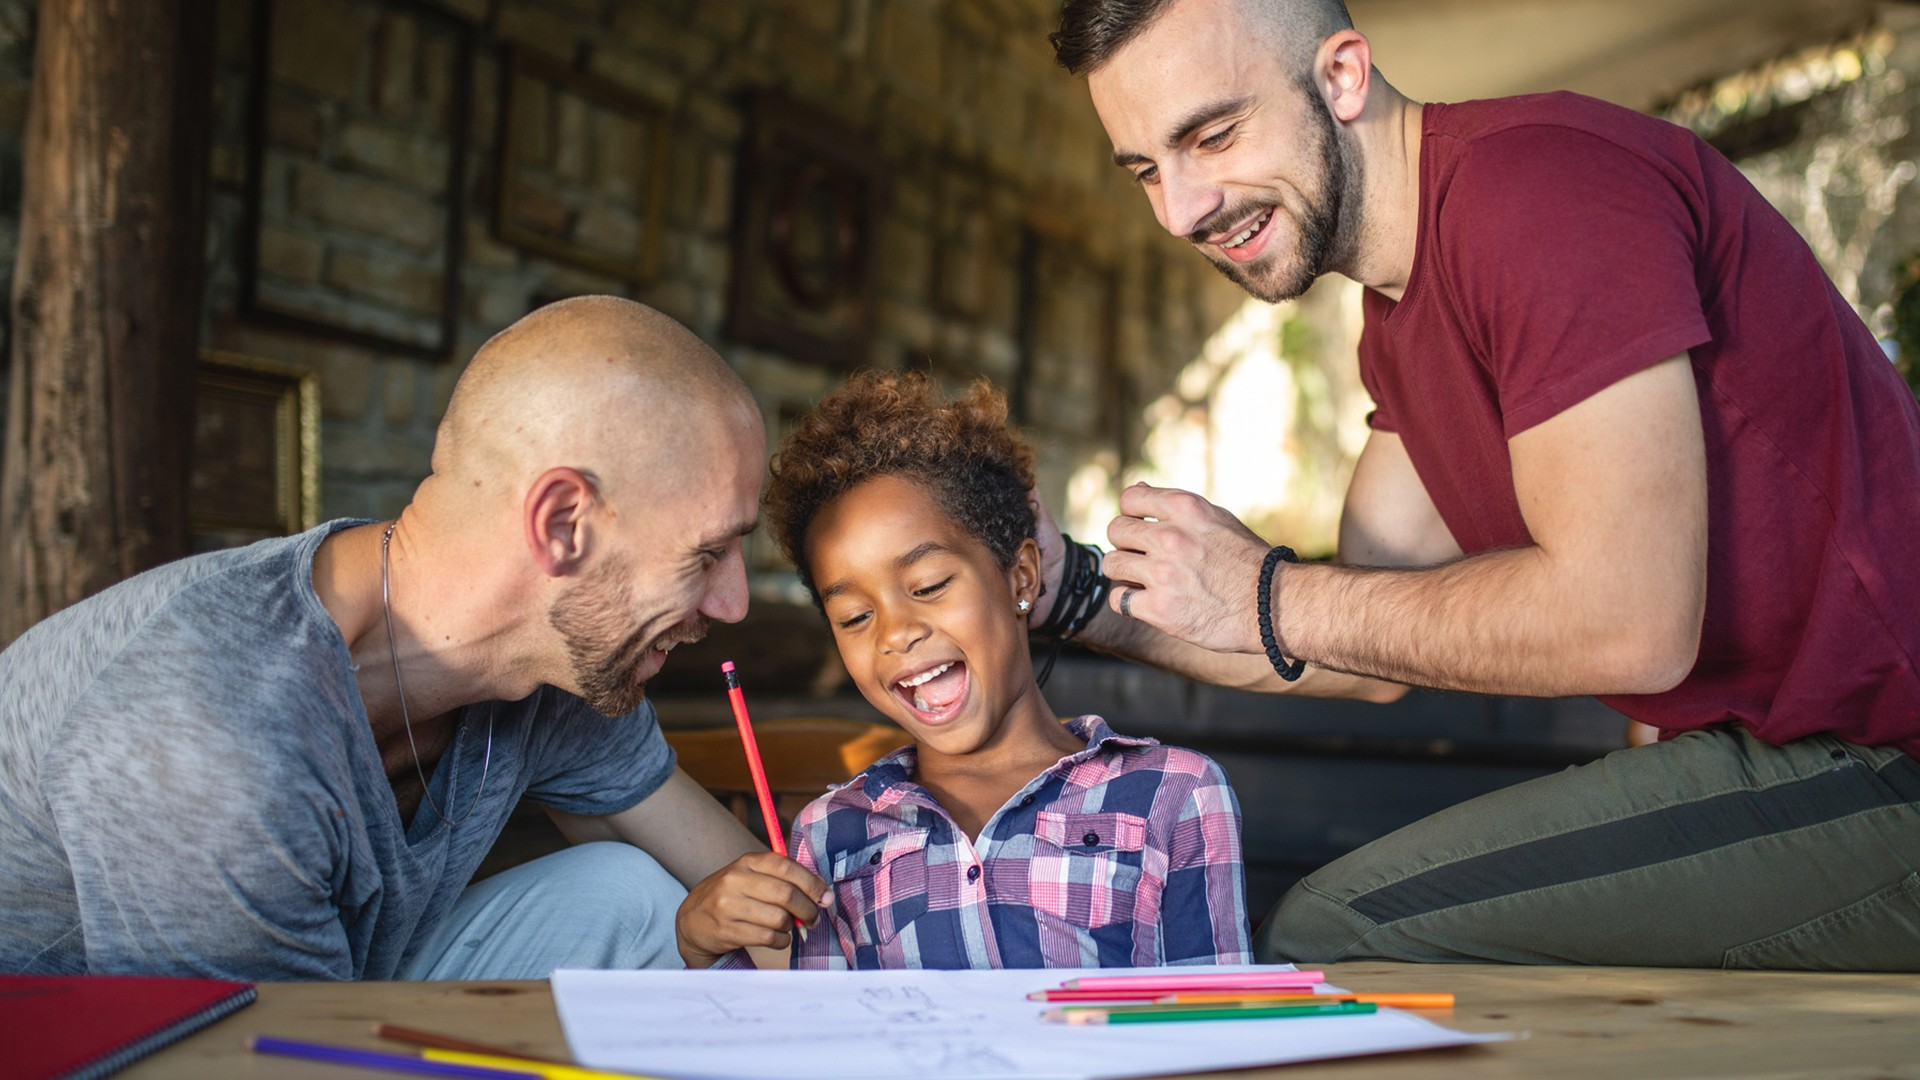 Two fathers and a young girl who is laughing work on completing a homework assignment at the table.